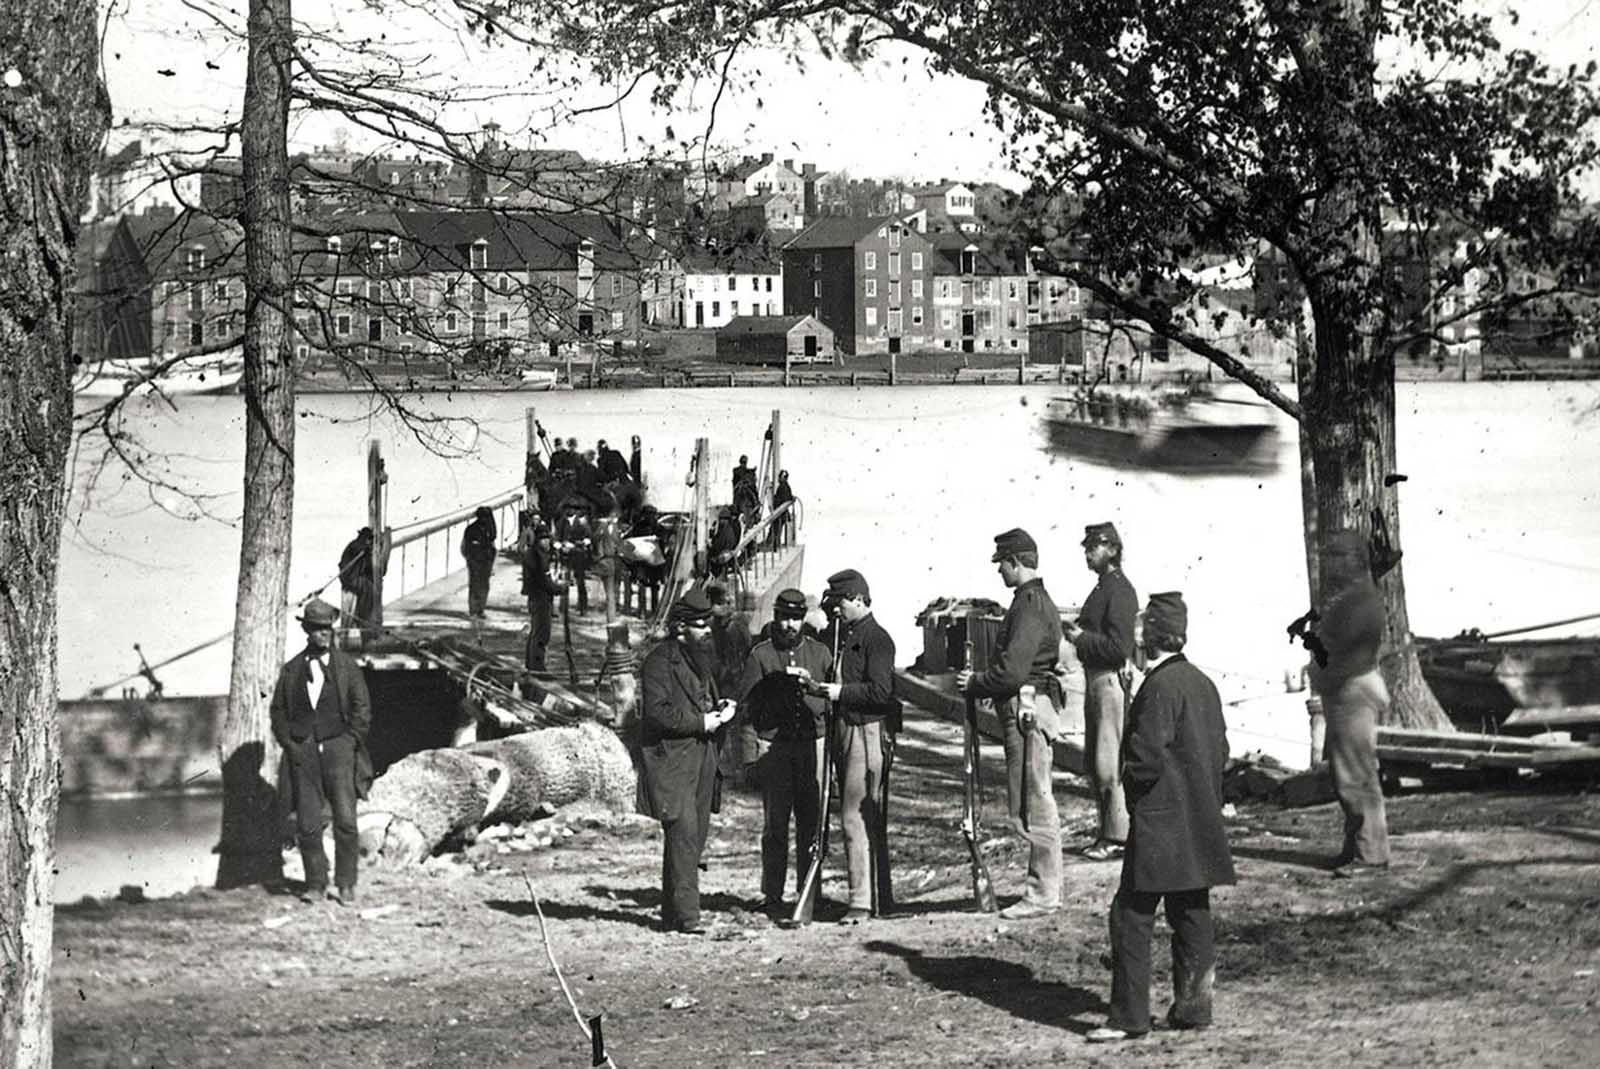 Guards examine passes near Georgetown, Washington District of Columbia, on the banks of the Potomac River, during the Civil War in 1865.